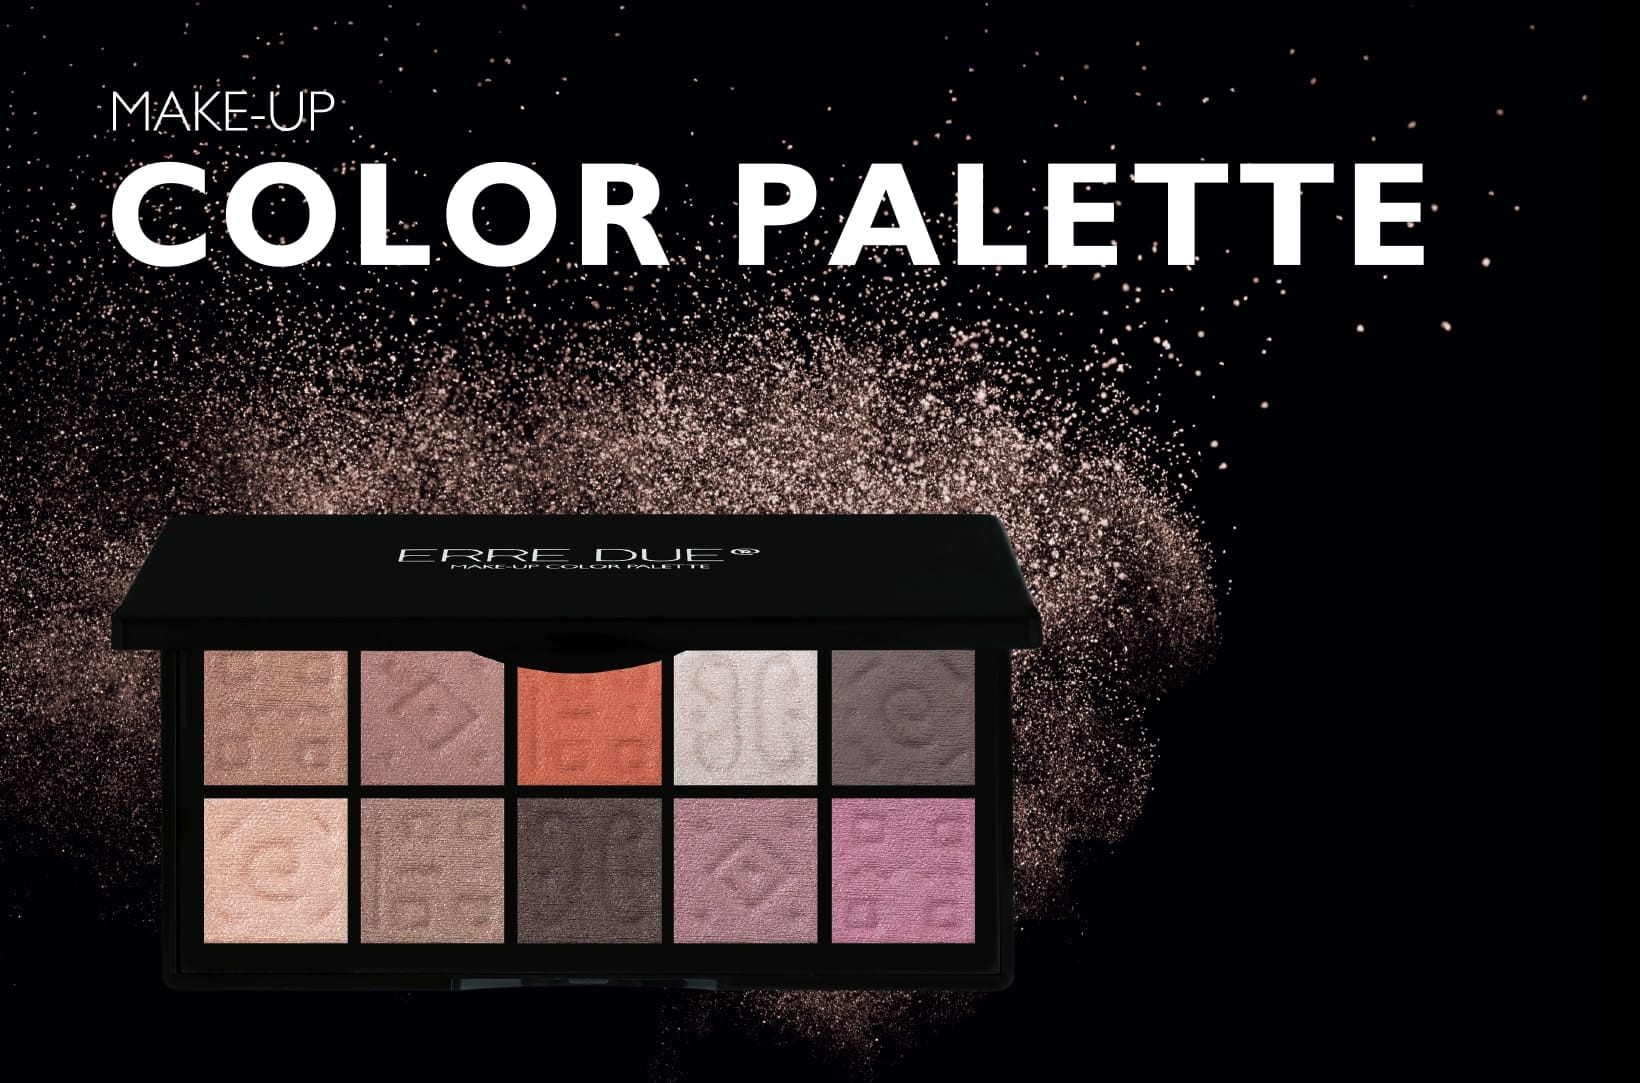 Make-Up Color Palette